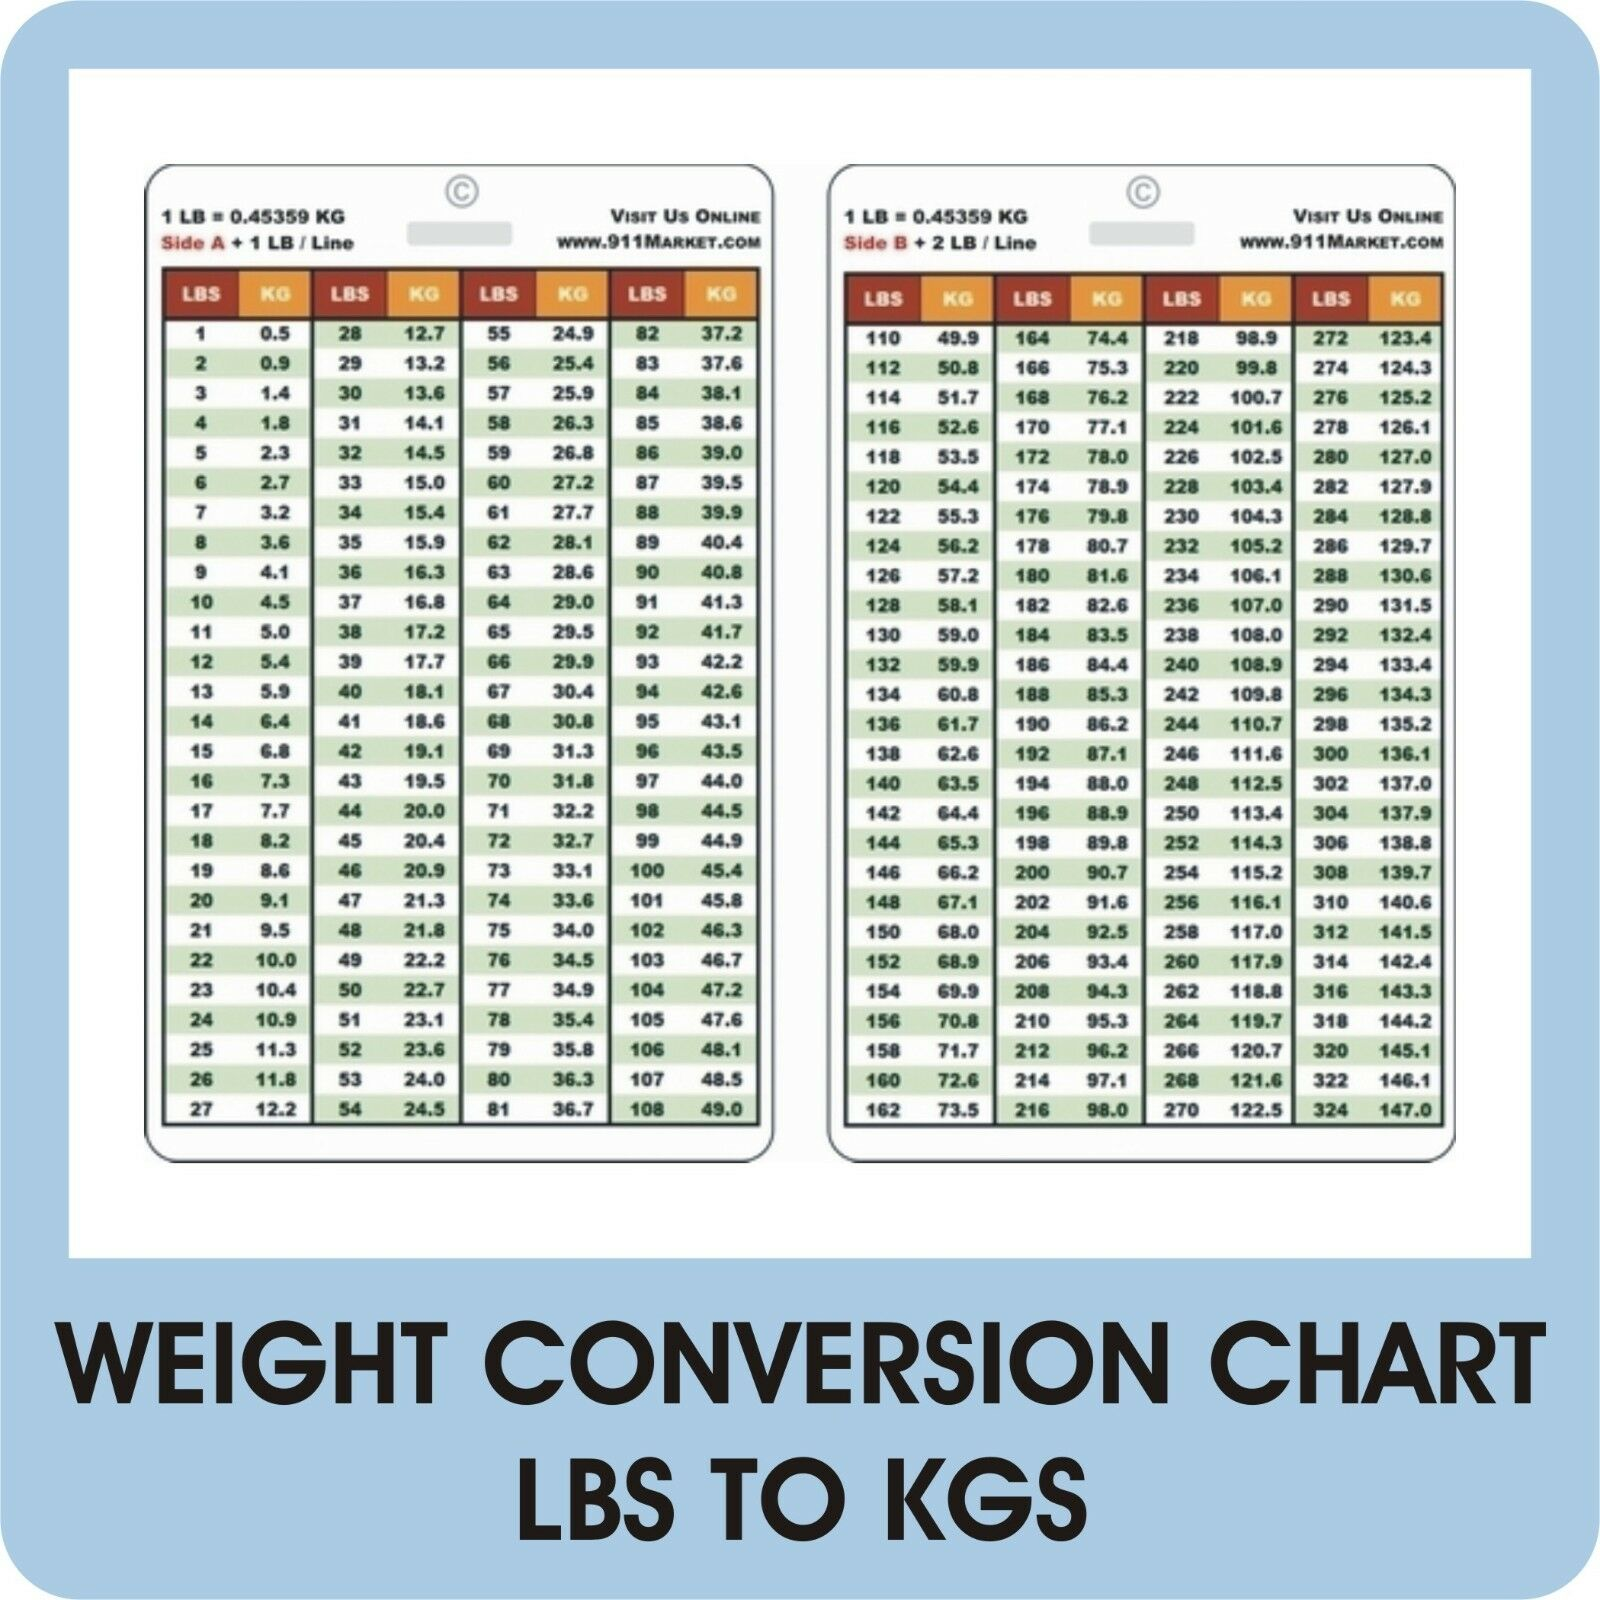 Weight Conversion Pvc Plastic Card Lbs To Kg Reference Nurse Rn Lpn